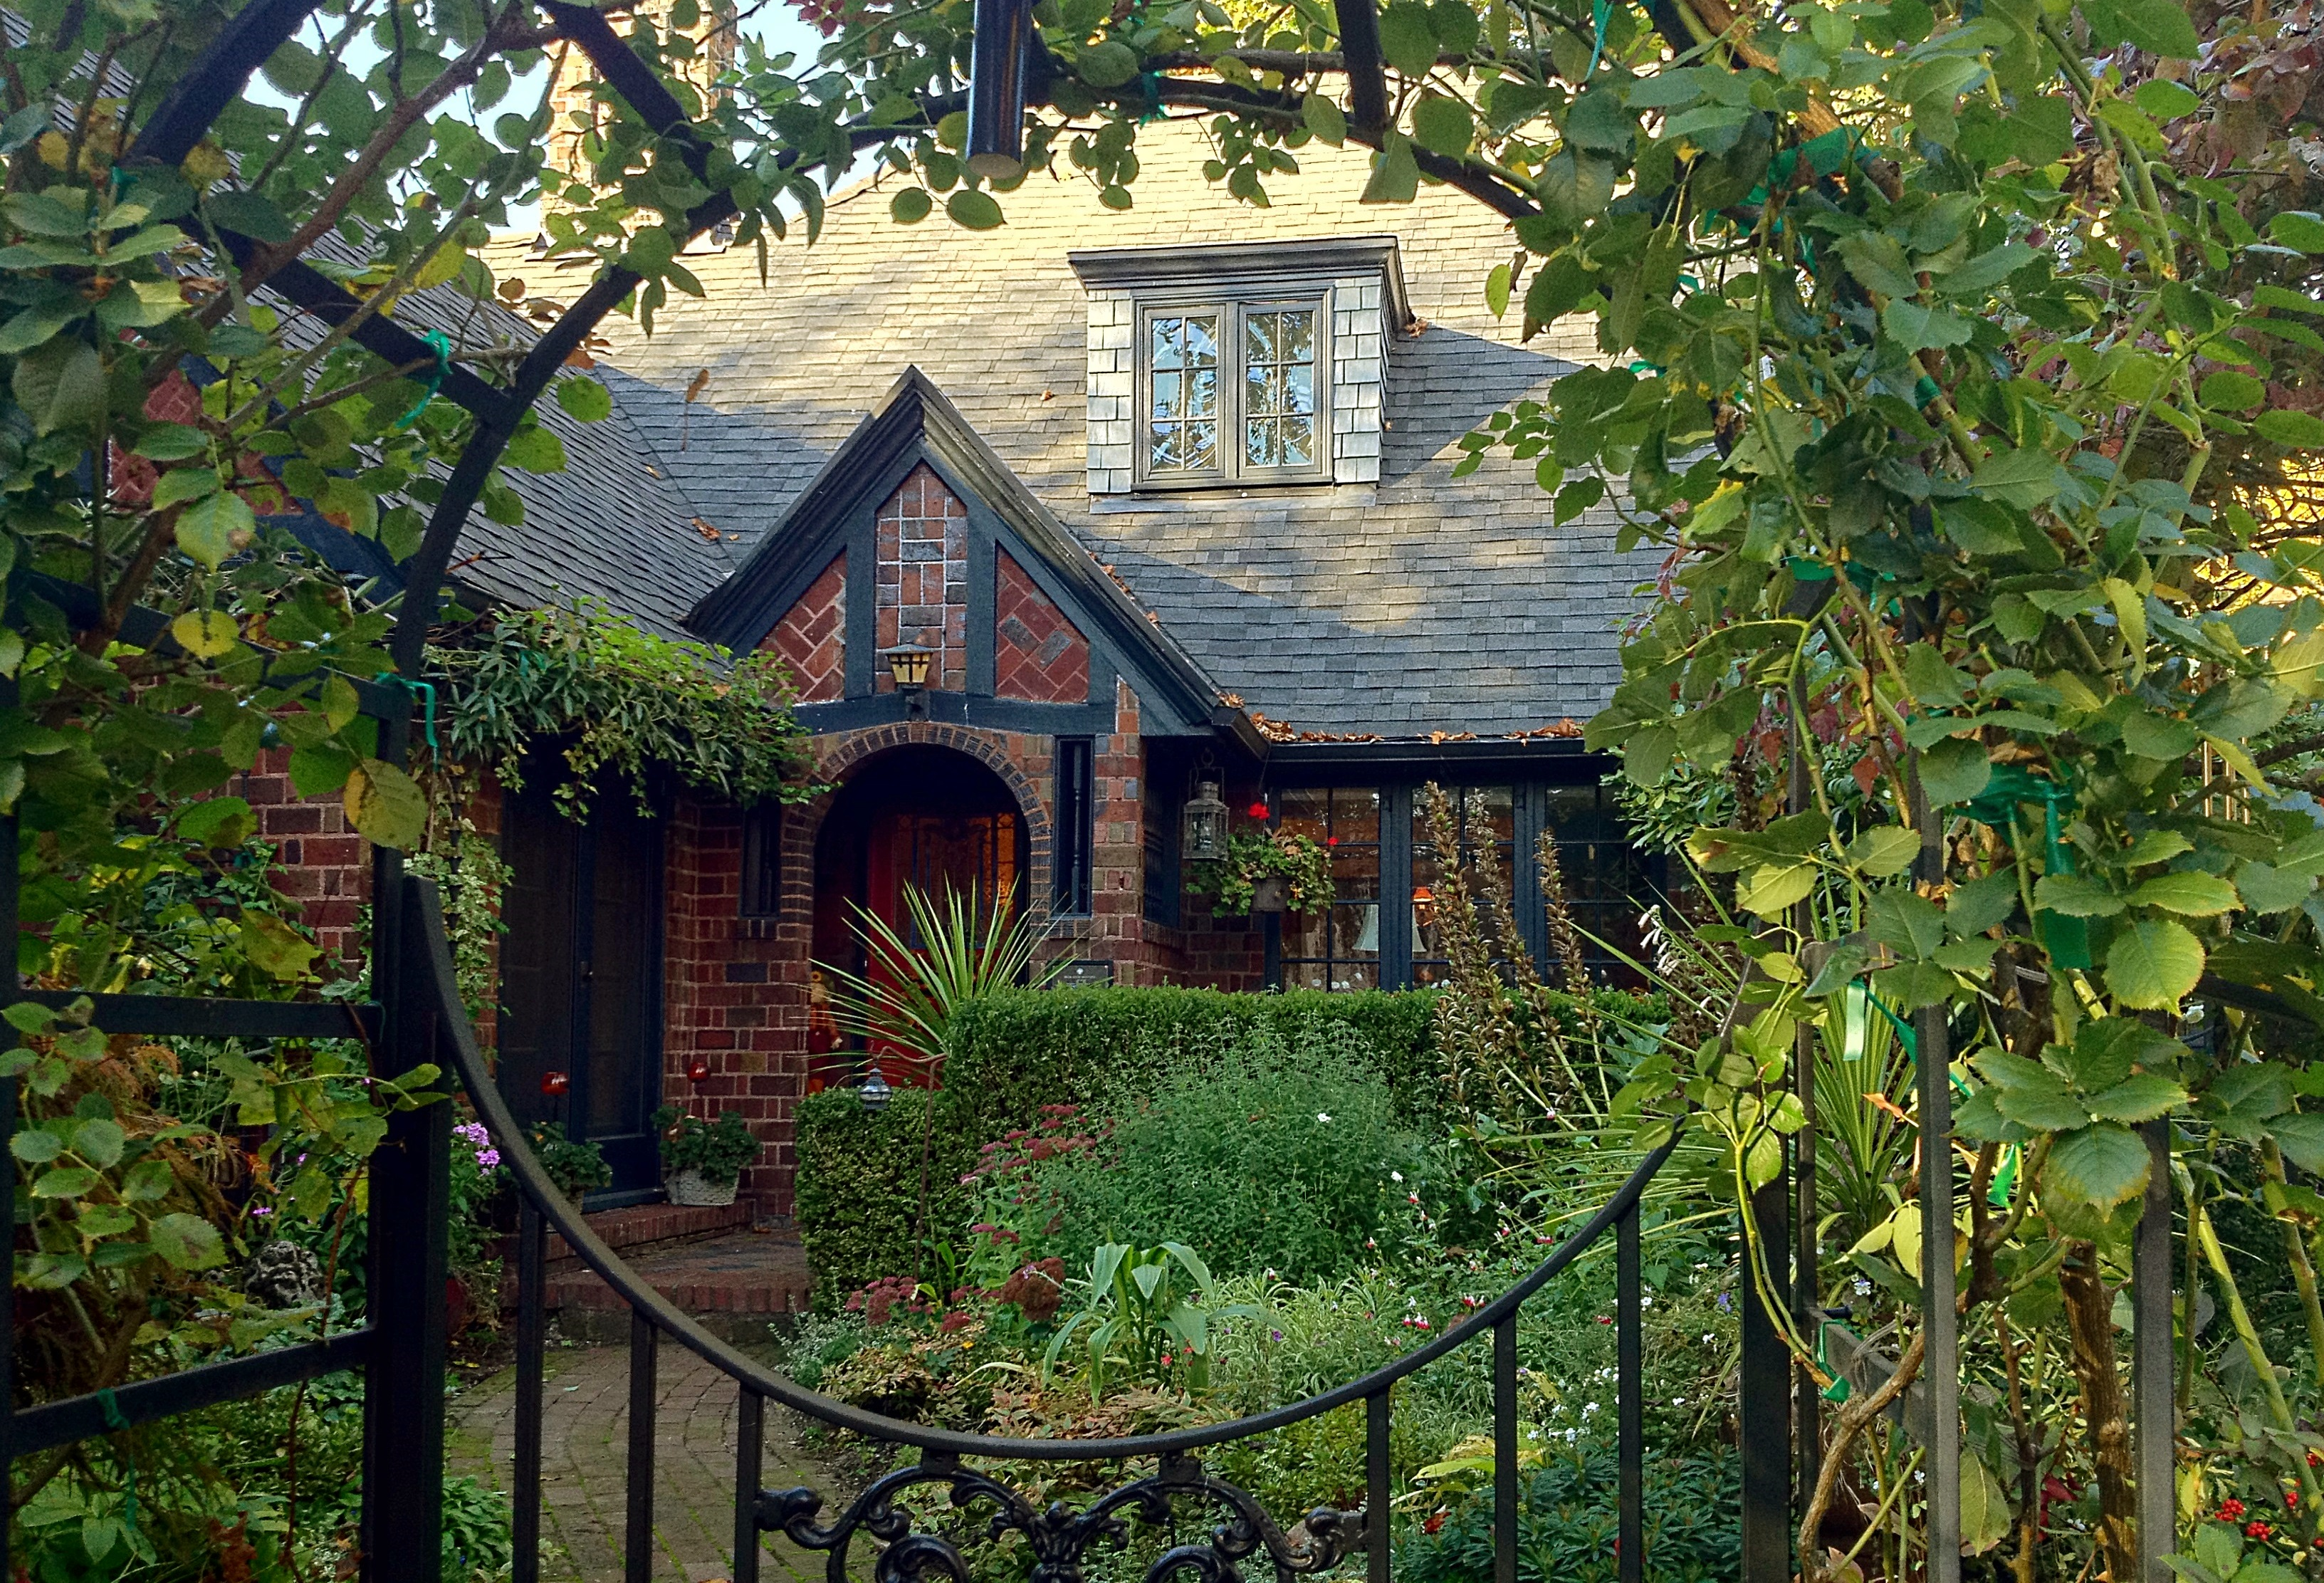 The Brick House Beautiful: A Unique and Timeless Portland